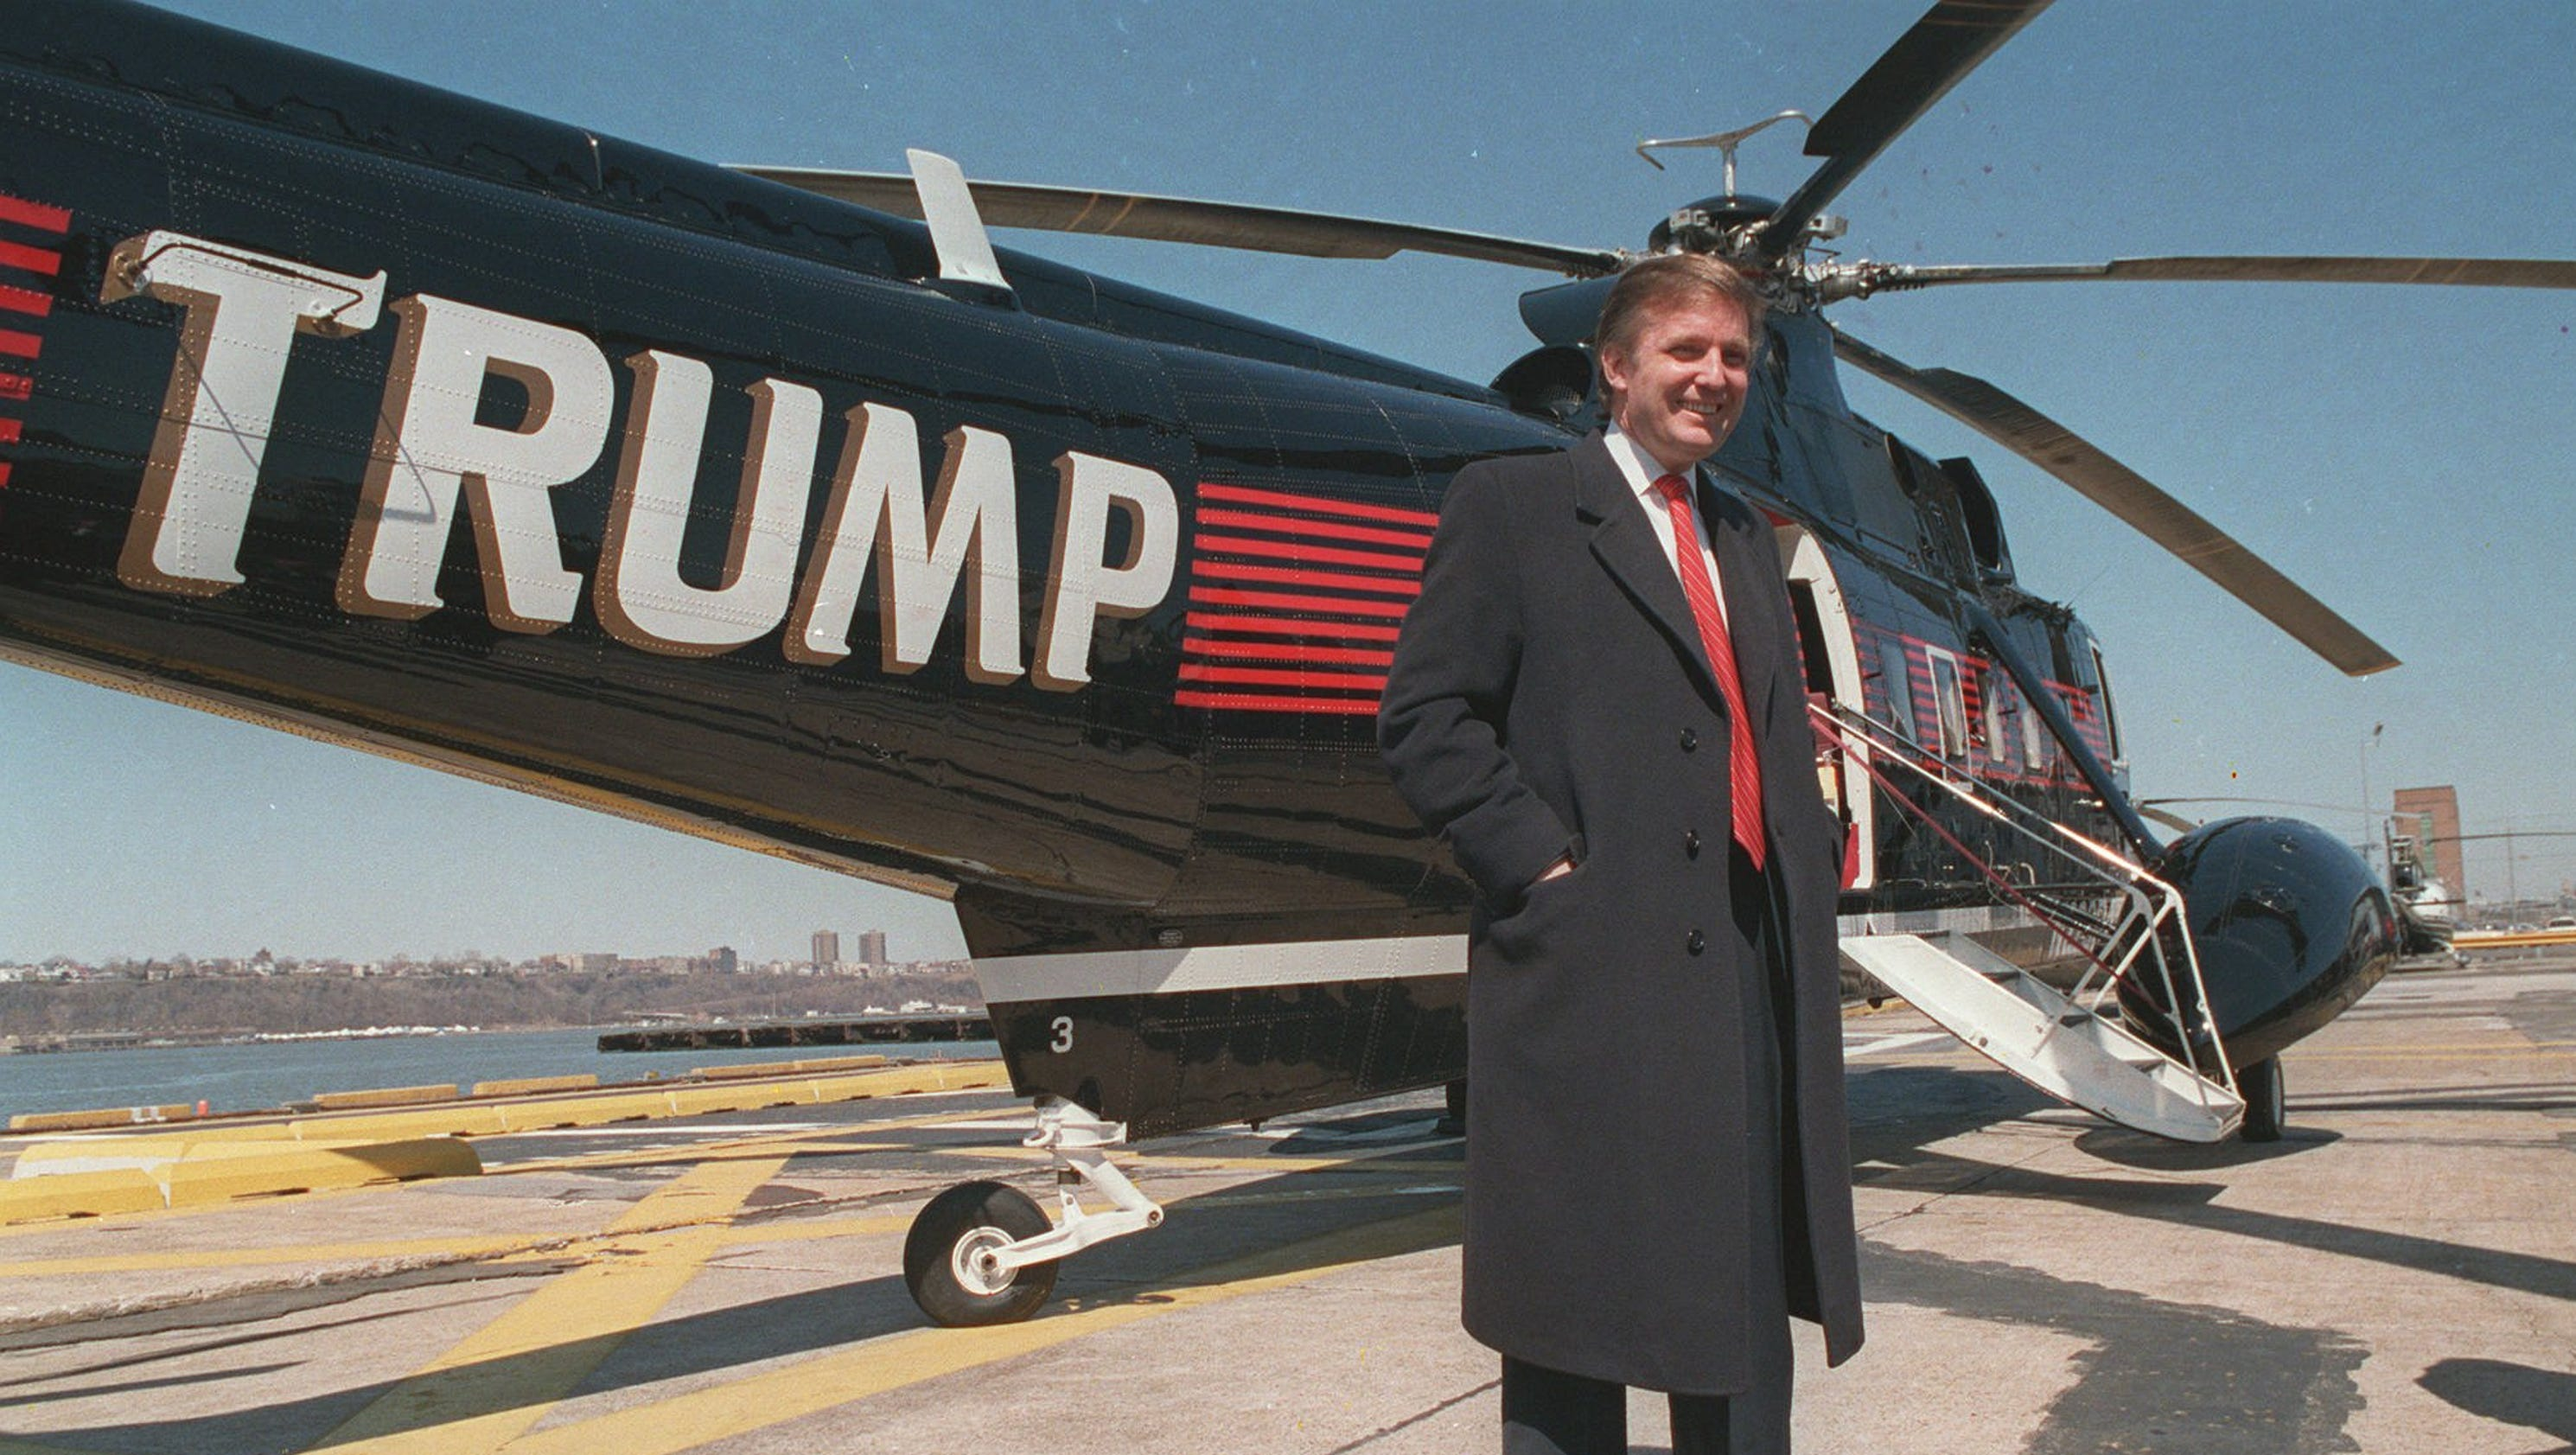 Donald Trump: A look at his career and 2016 campaign